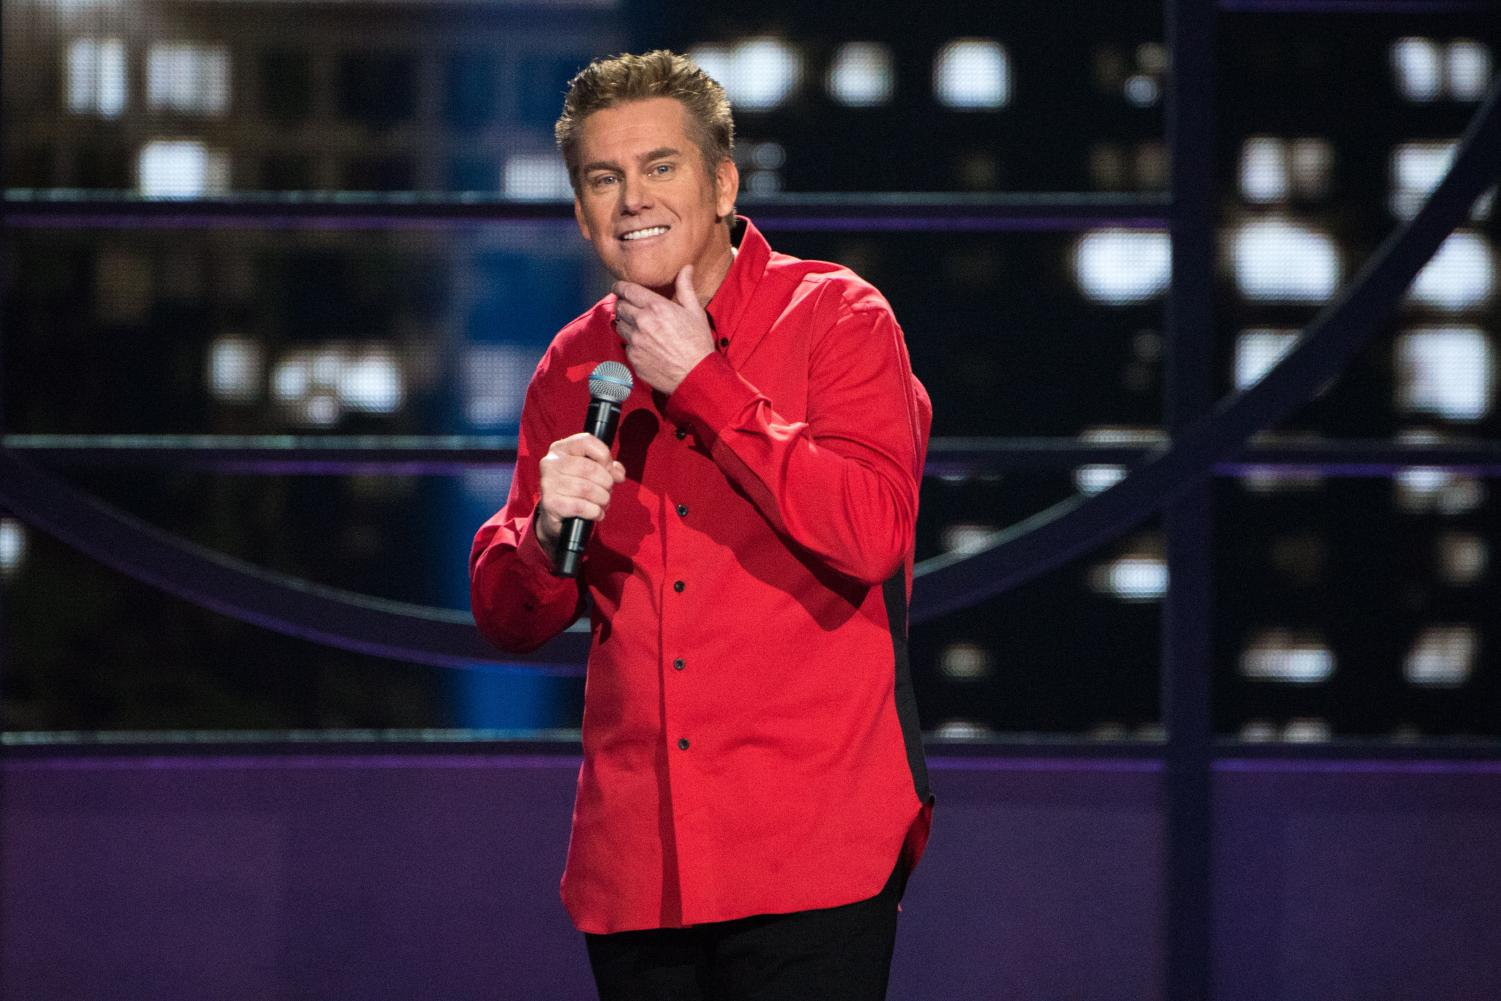 Comedian Brian Regan is set to bring his observational humor and stand-up to San Diego Nov. 17 at the Balboa Theater.